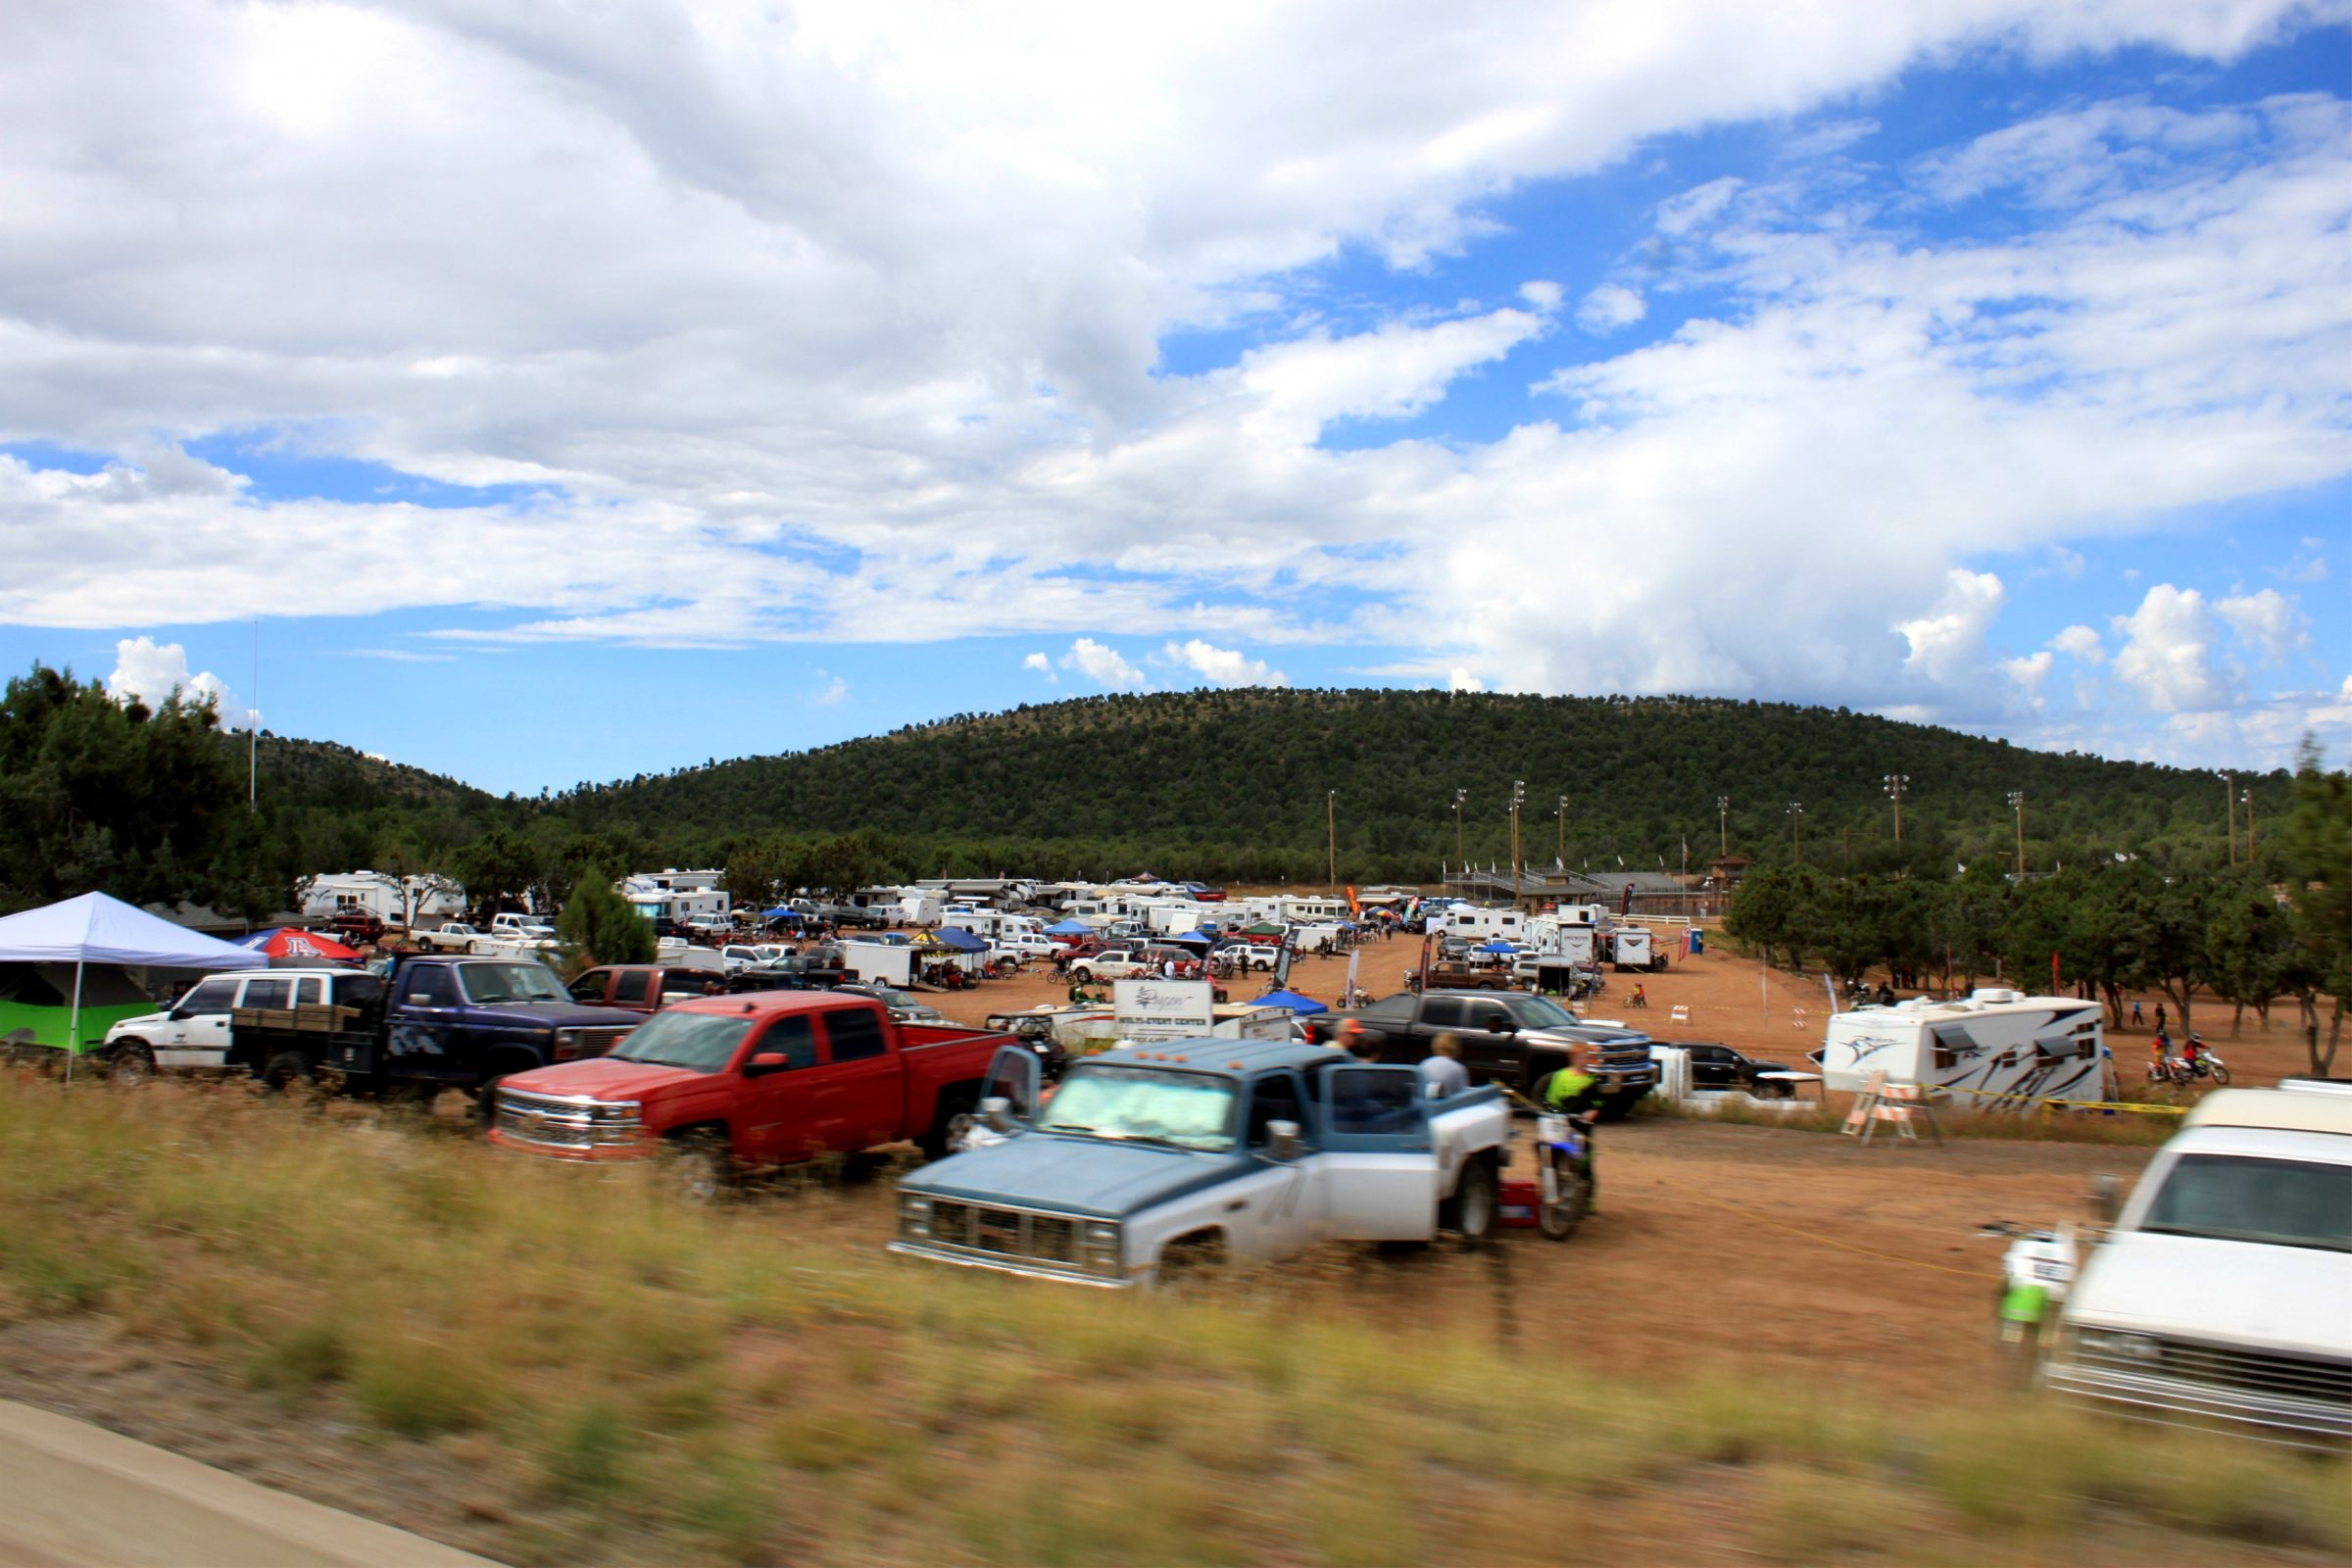 Redneck Edition Racing Payson October 2016 Tigerstrypesblog